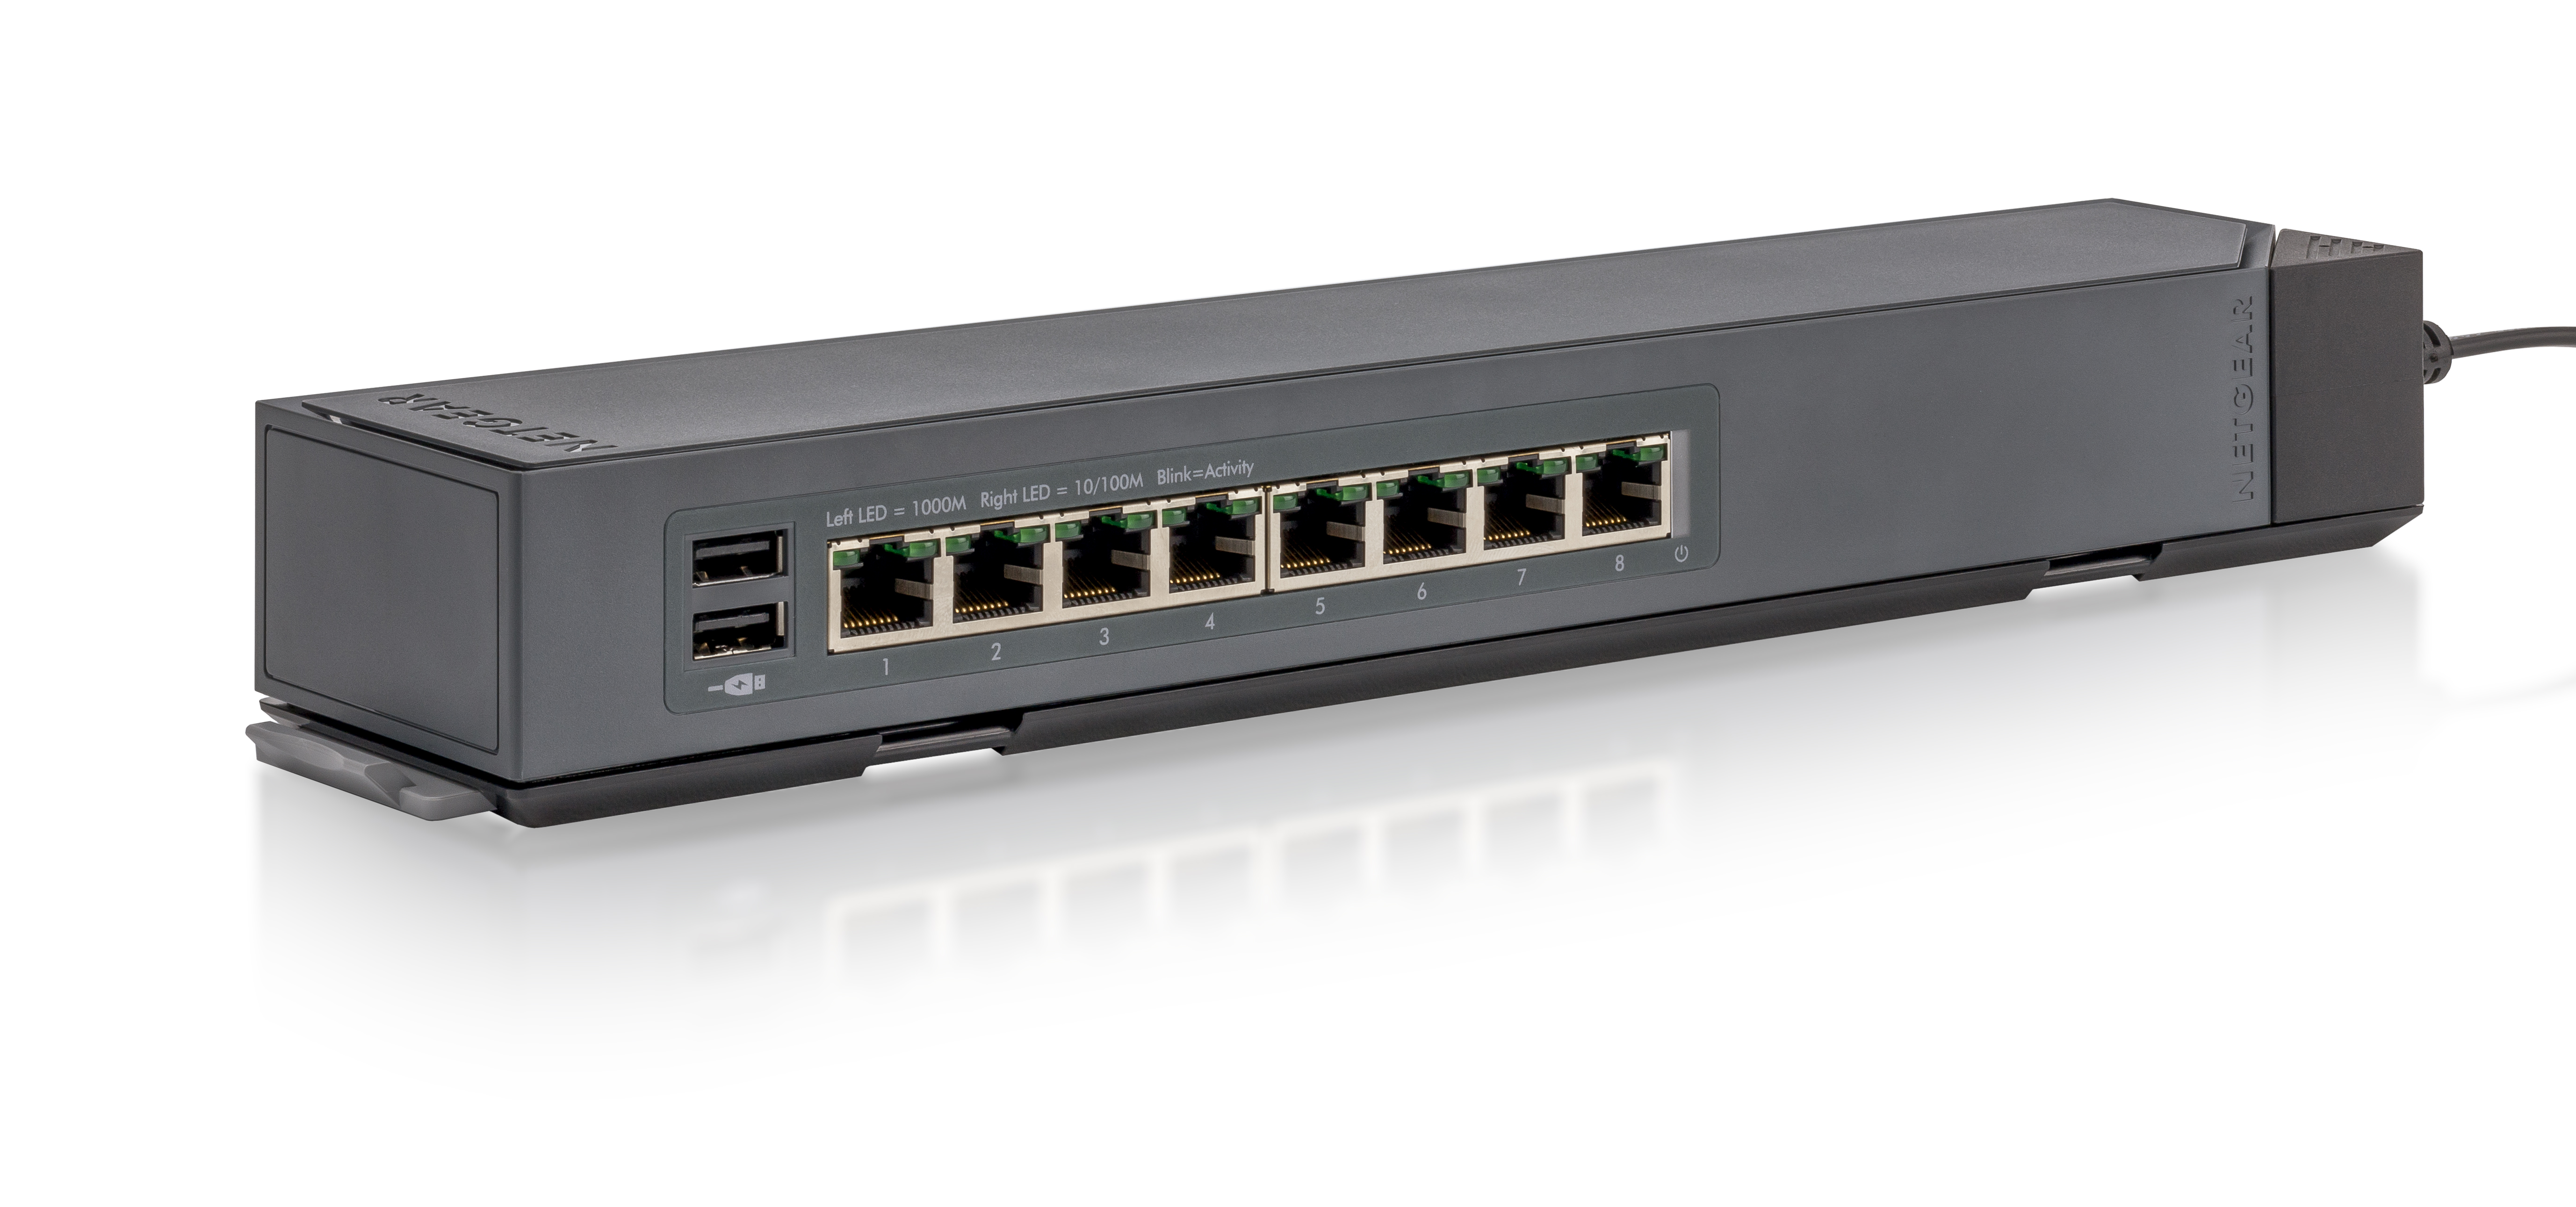 Network Switch Mounting and Cabling Headaches are Gone as NETGEAR ...